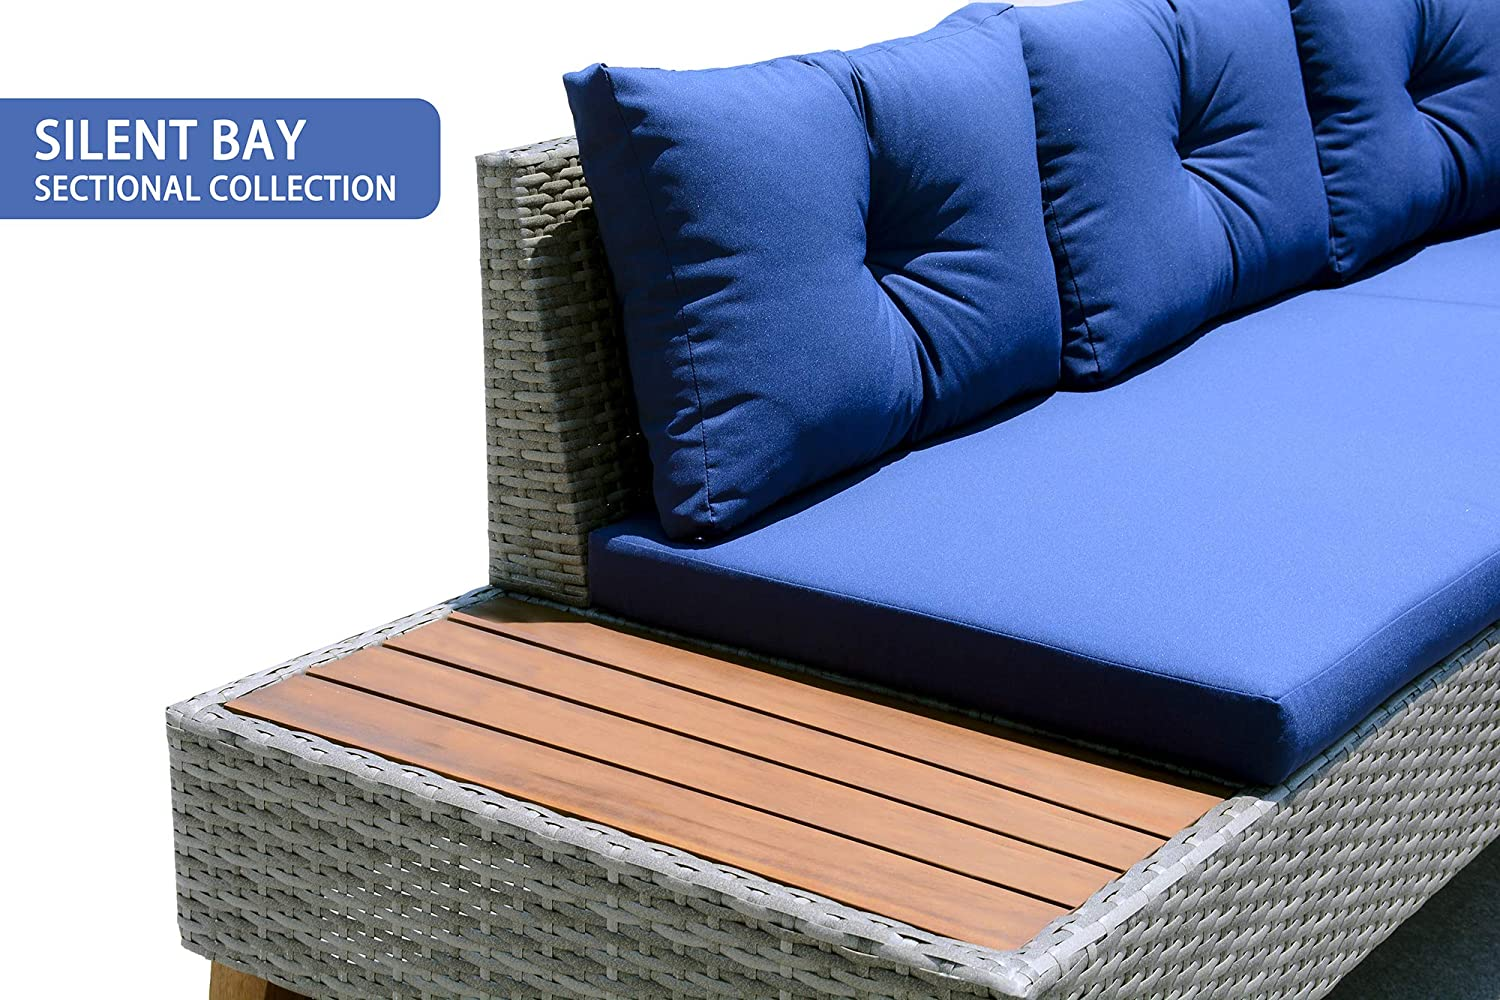 Blue Cushion and Solid Wood Table 3 Piece Outdoor Sectional Sofa Manual Weaving Wicker Rattan Patio Conversation Set Patio Furniture Set Grey